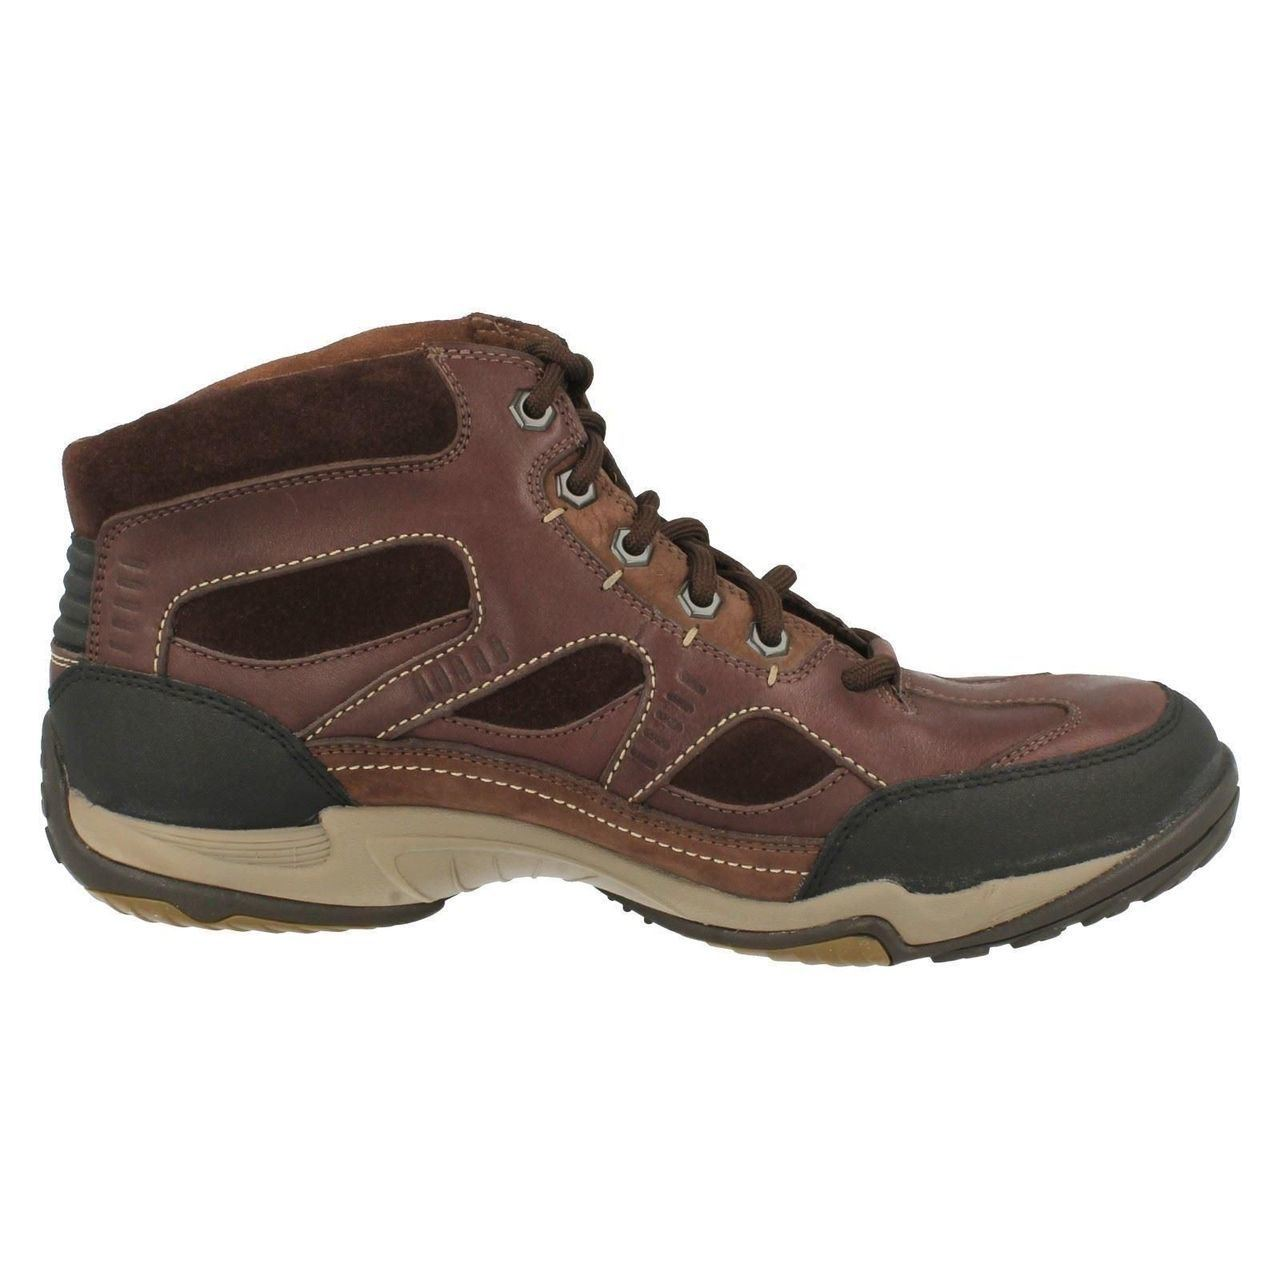 Gtx' The Style ~ K Clarks Boots Mens Waterproof Ebonybrown 'rodwing y80mNnOvw